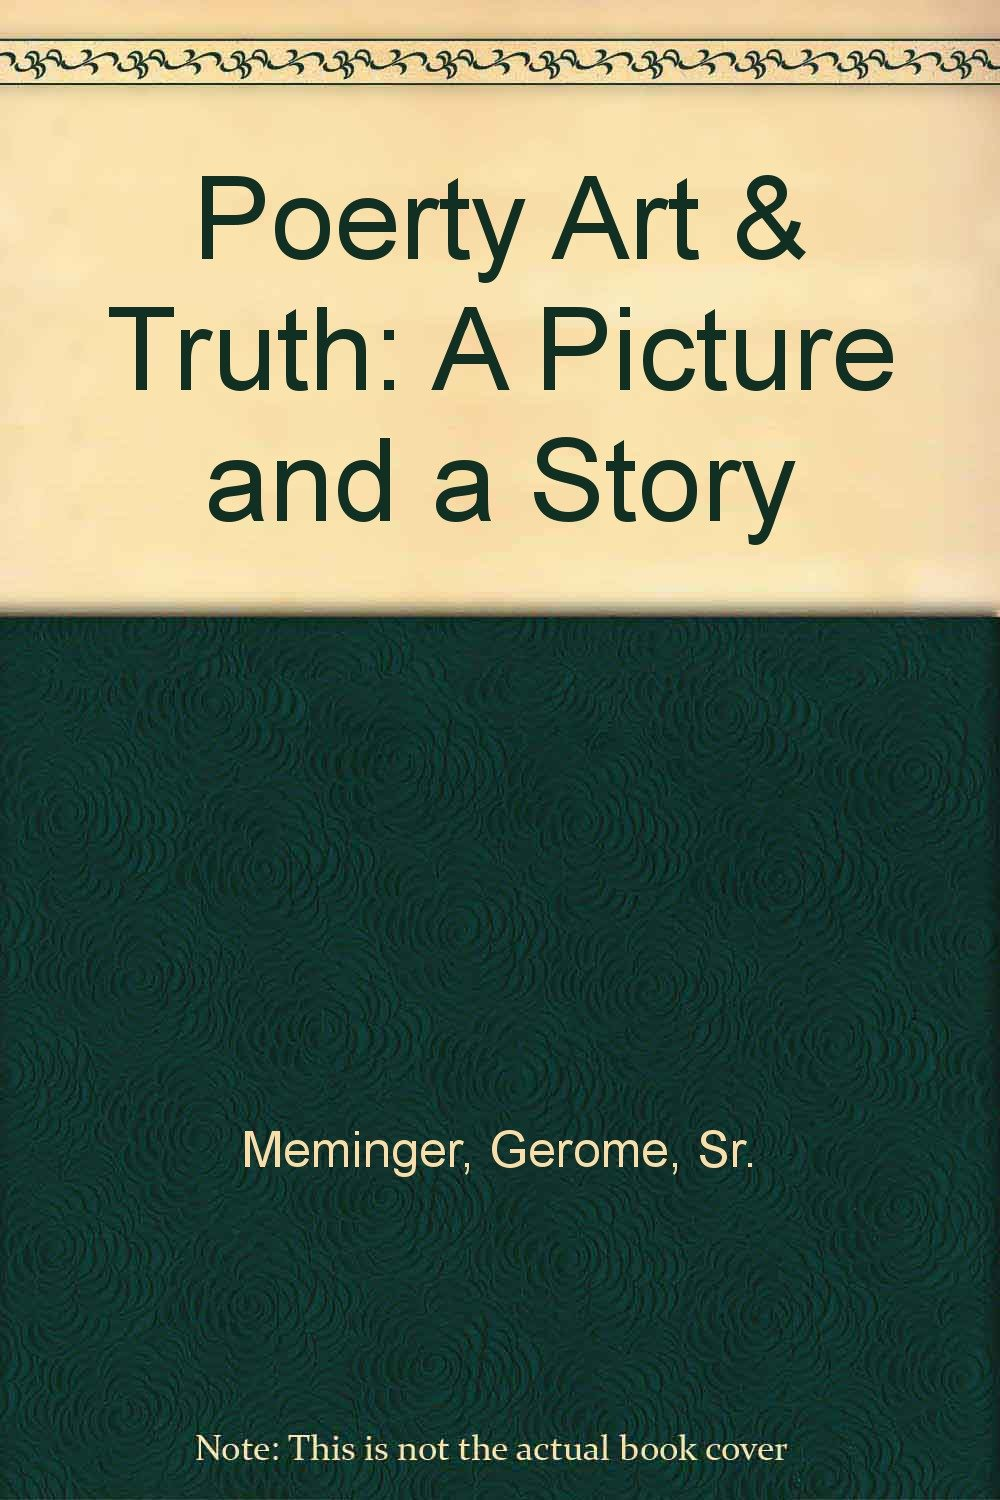 Download Poerty Art & Truth: A Picture and a Story ebook